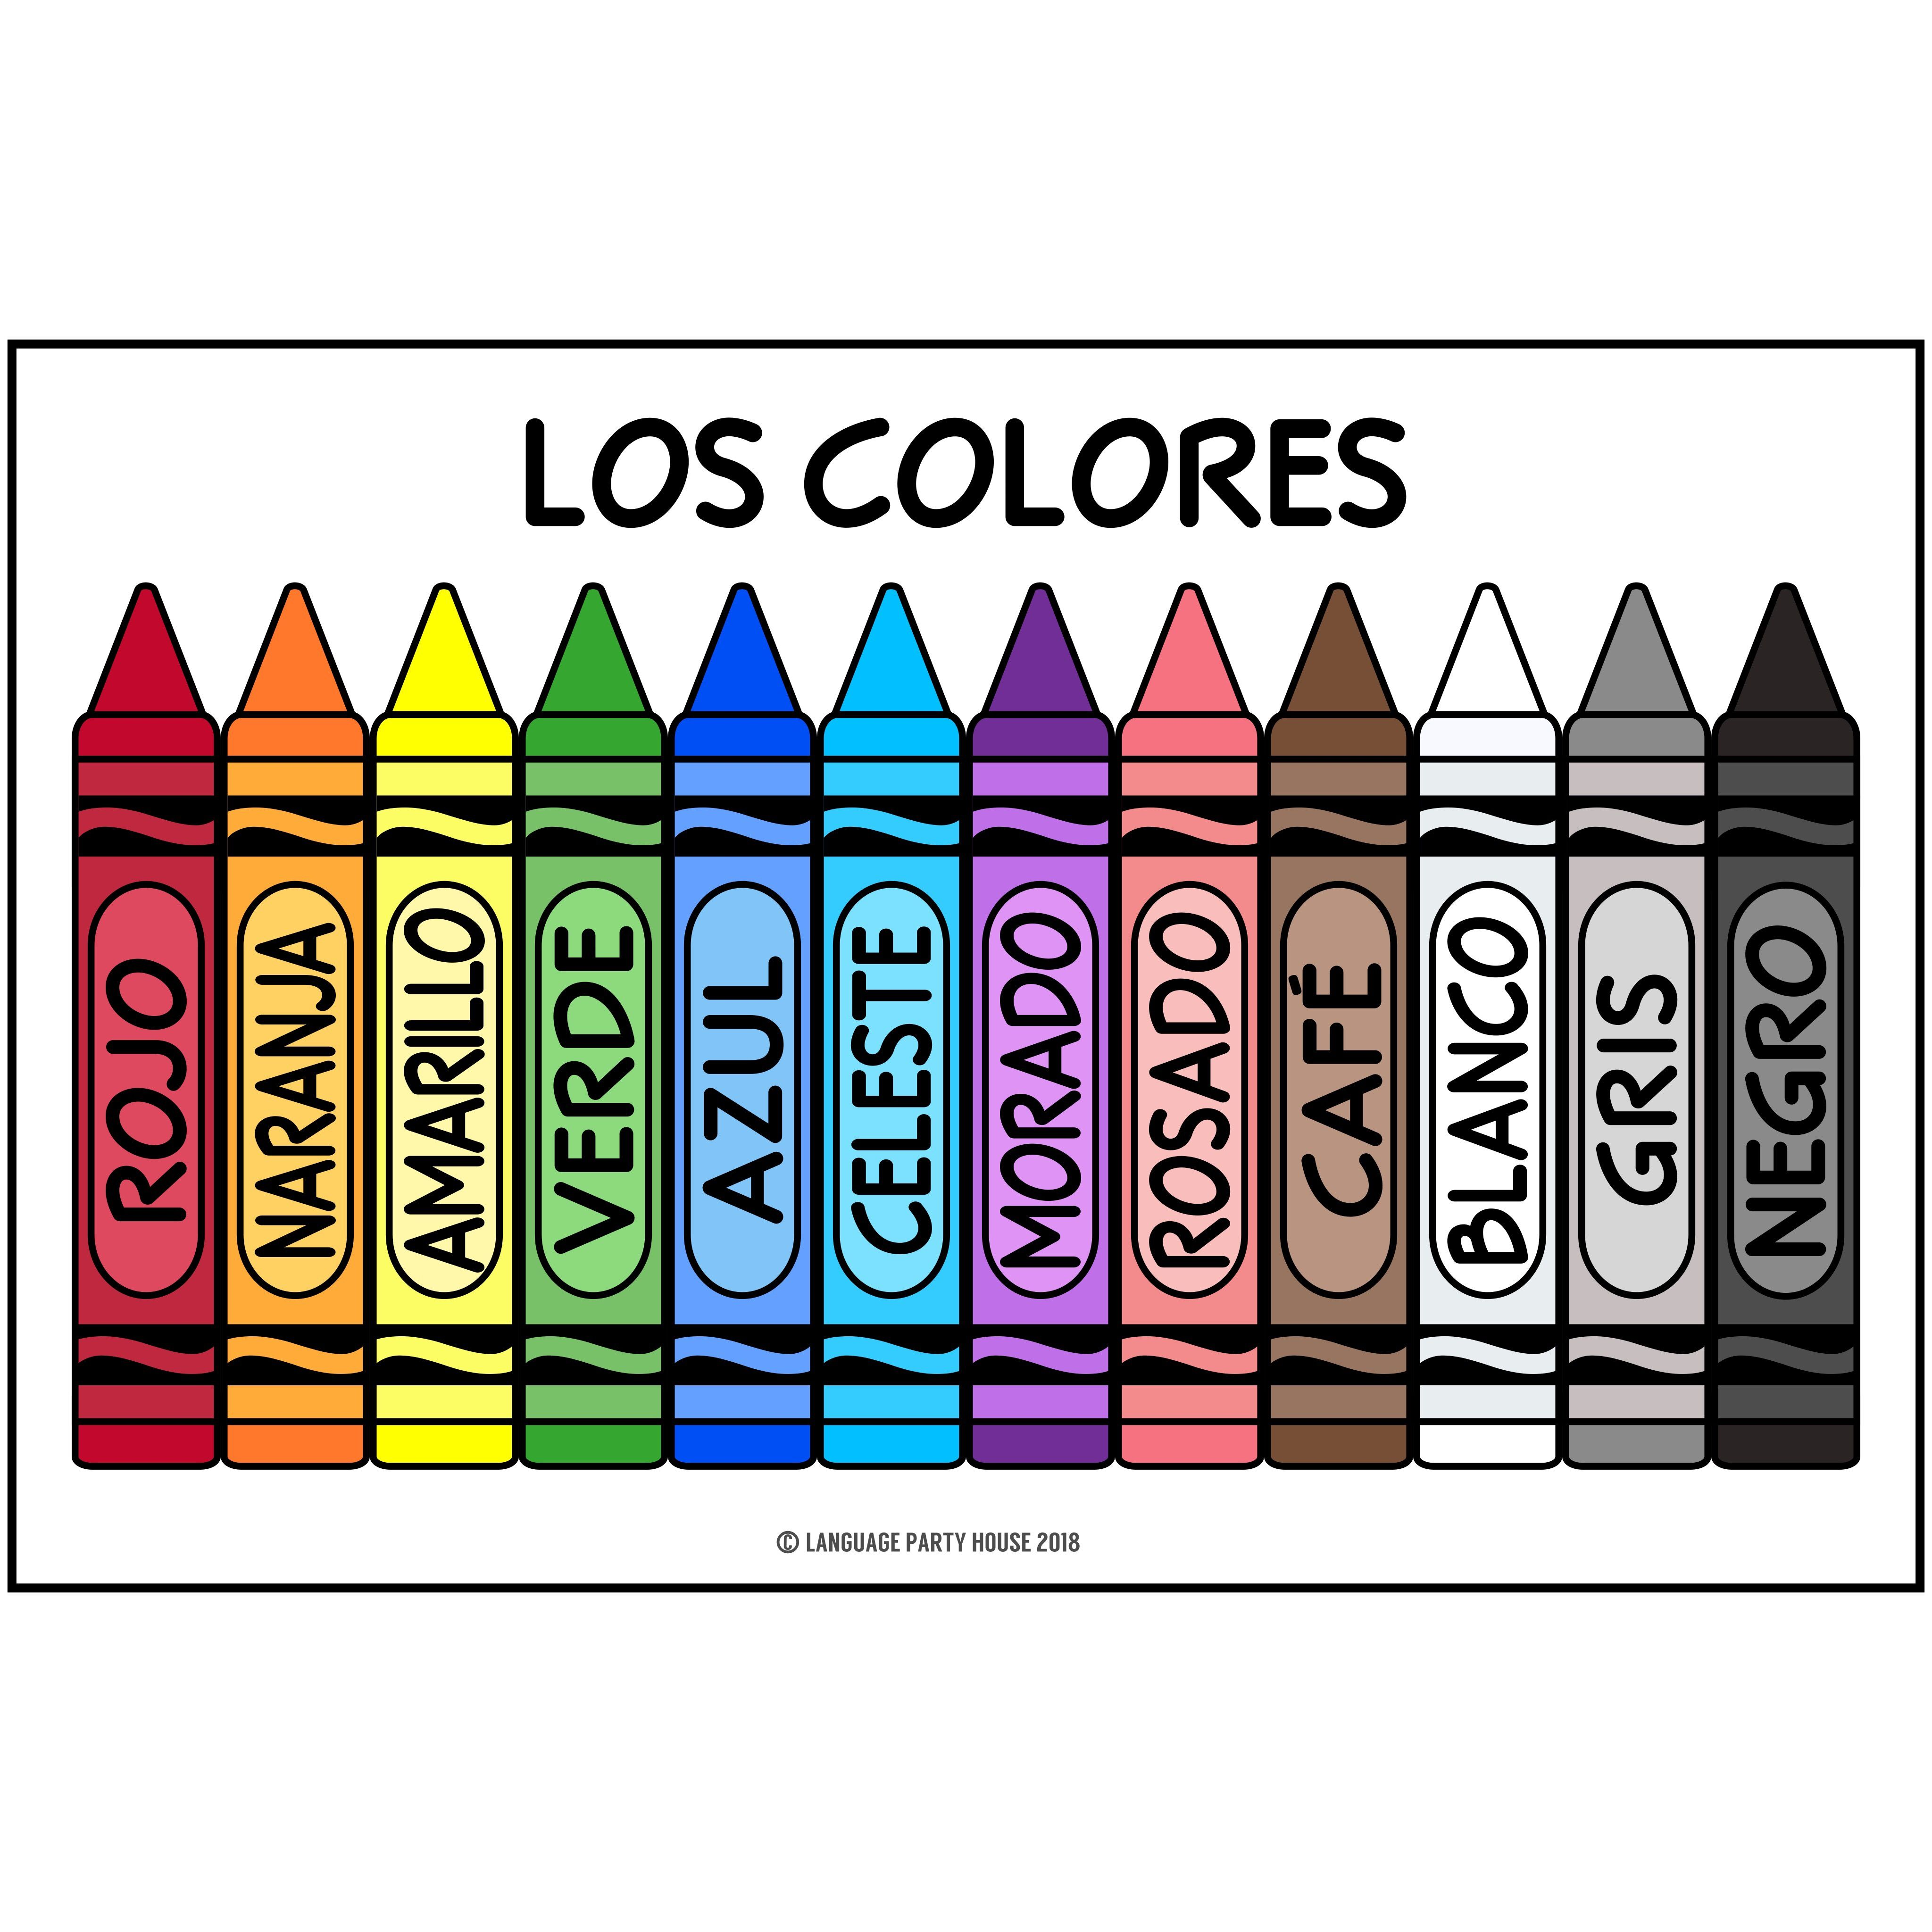 Crayons In Spanish Spanish Colors High Resolution